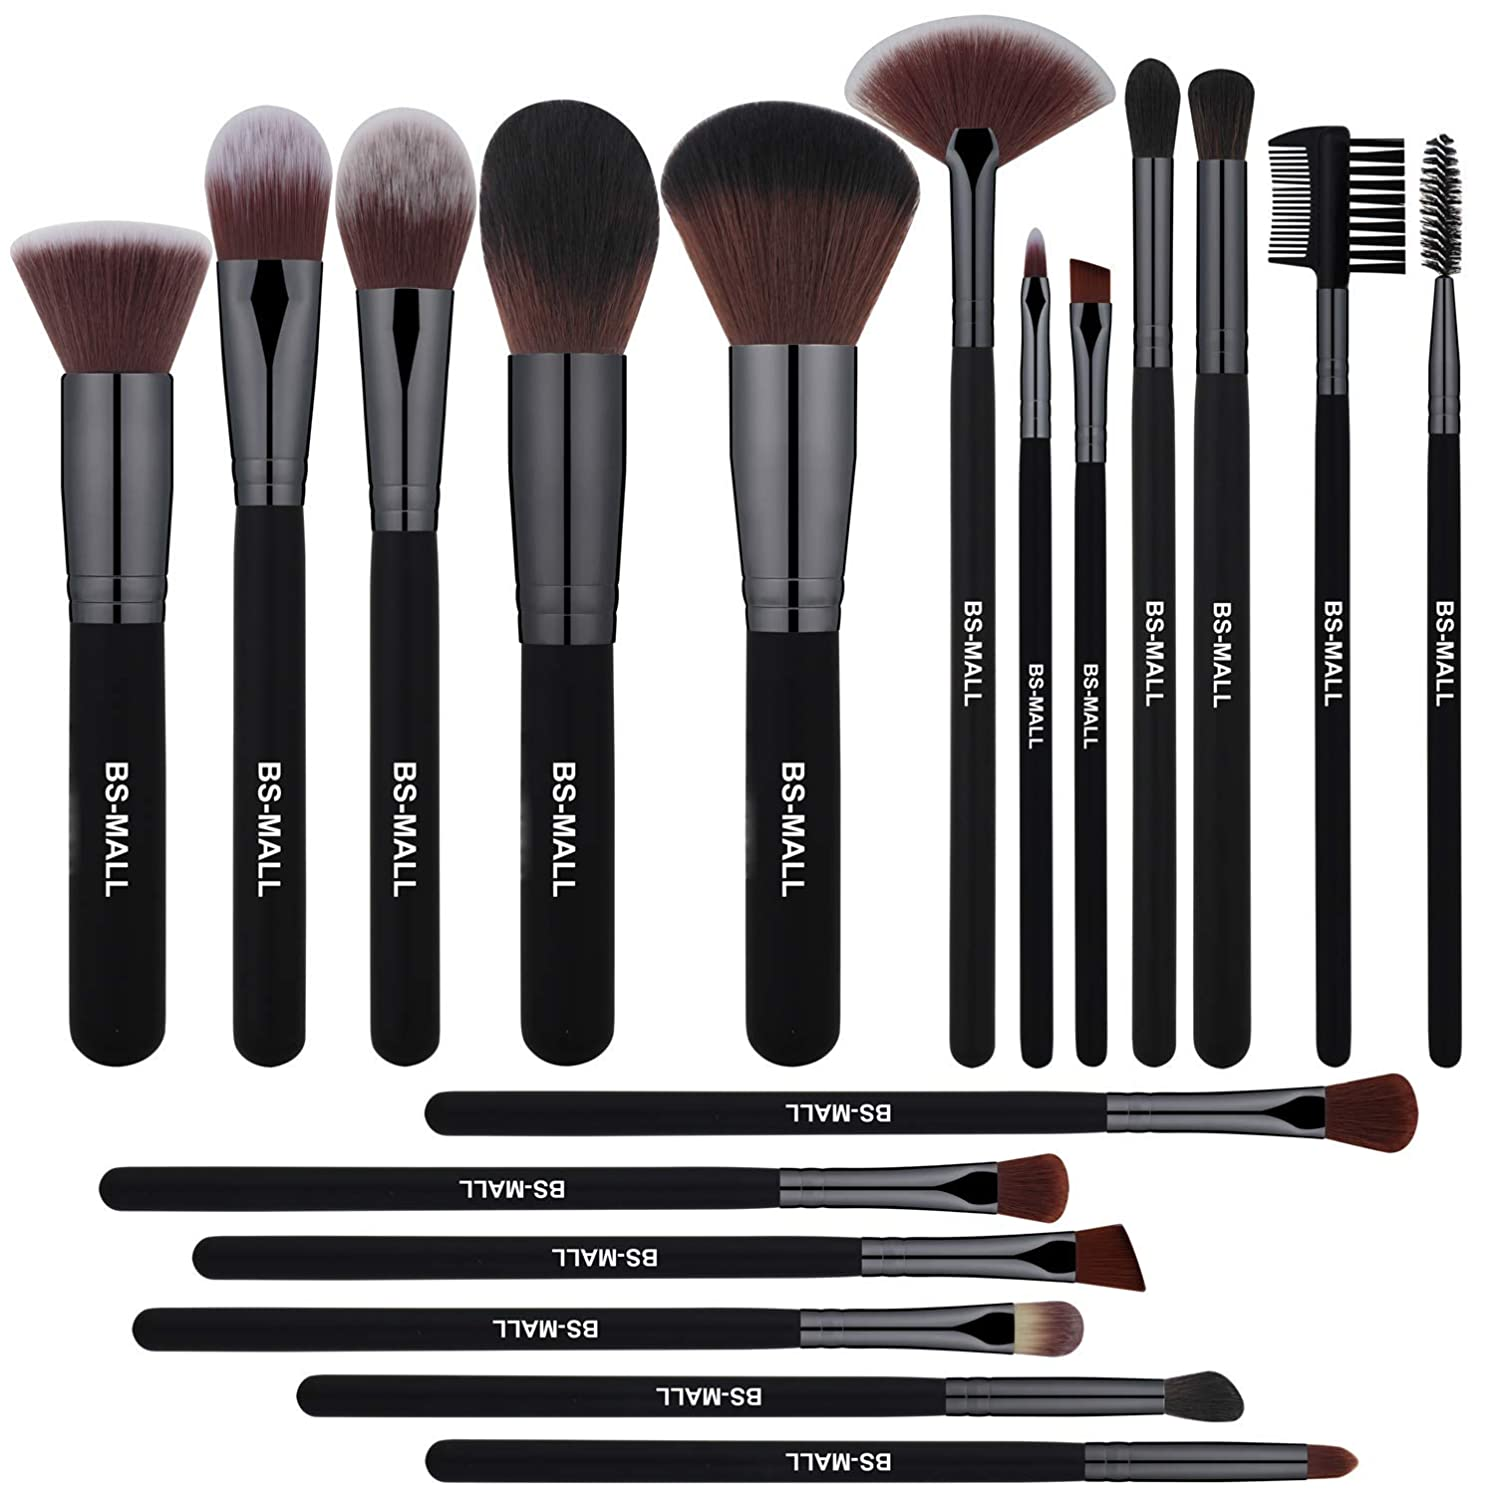 2d6349fa1772 BS-MALL Makeup Brushes Premium 18 Pcs Synthetic Foundation Powder  Concealers Eye Shadows...